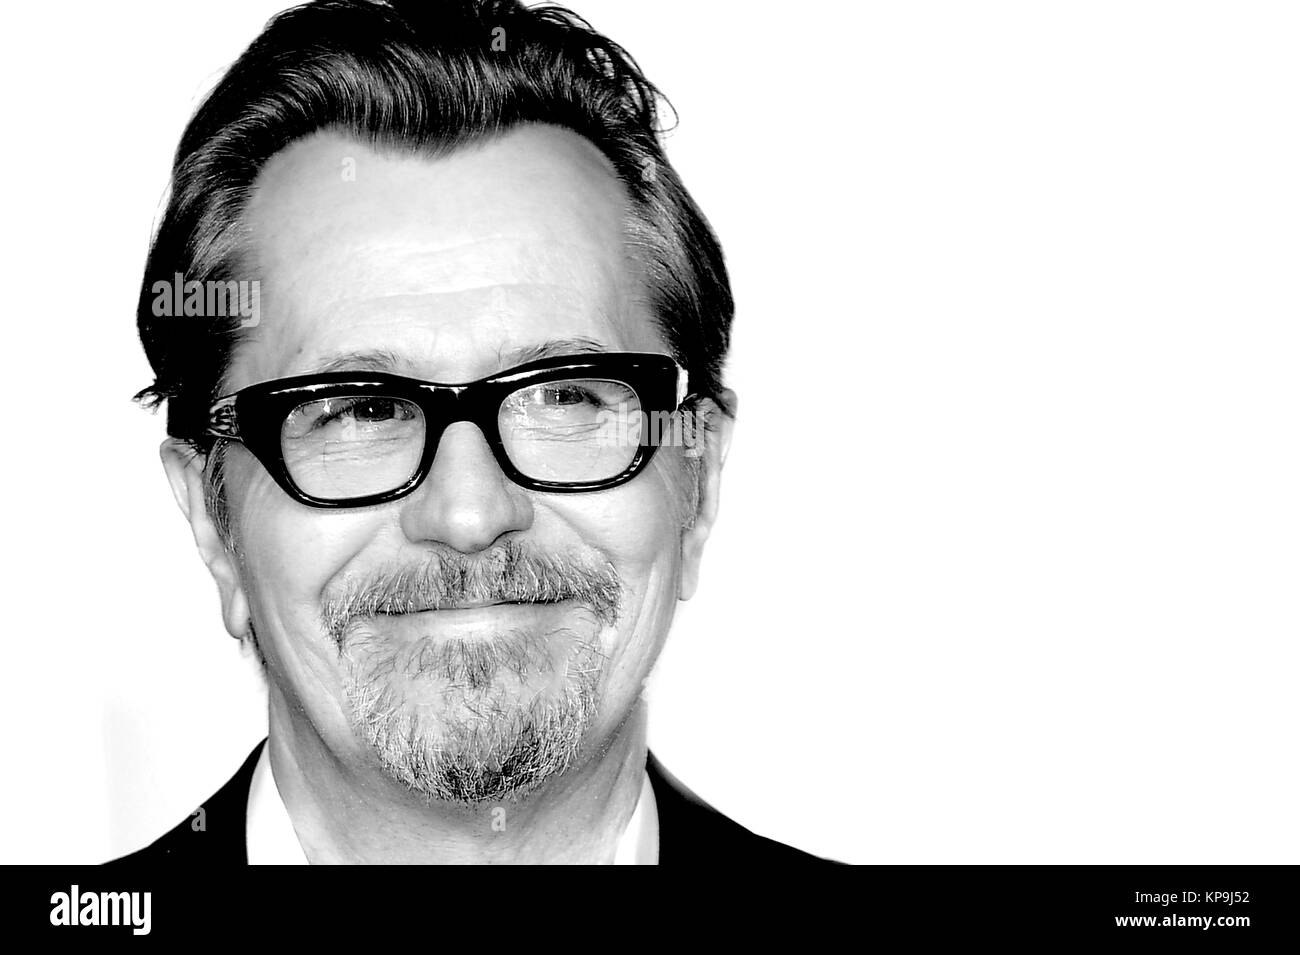 Gary oldman attends the uk premiere of darkest hour at odeon leicester square in london